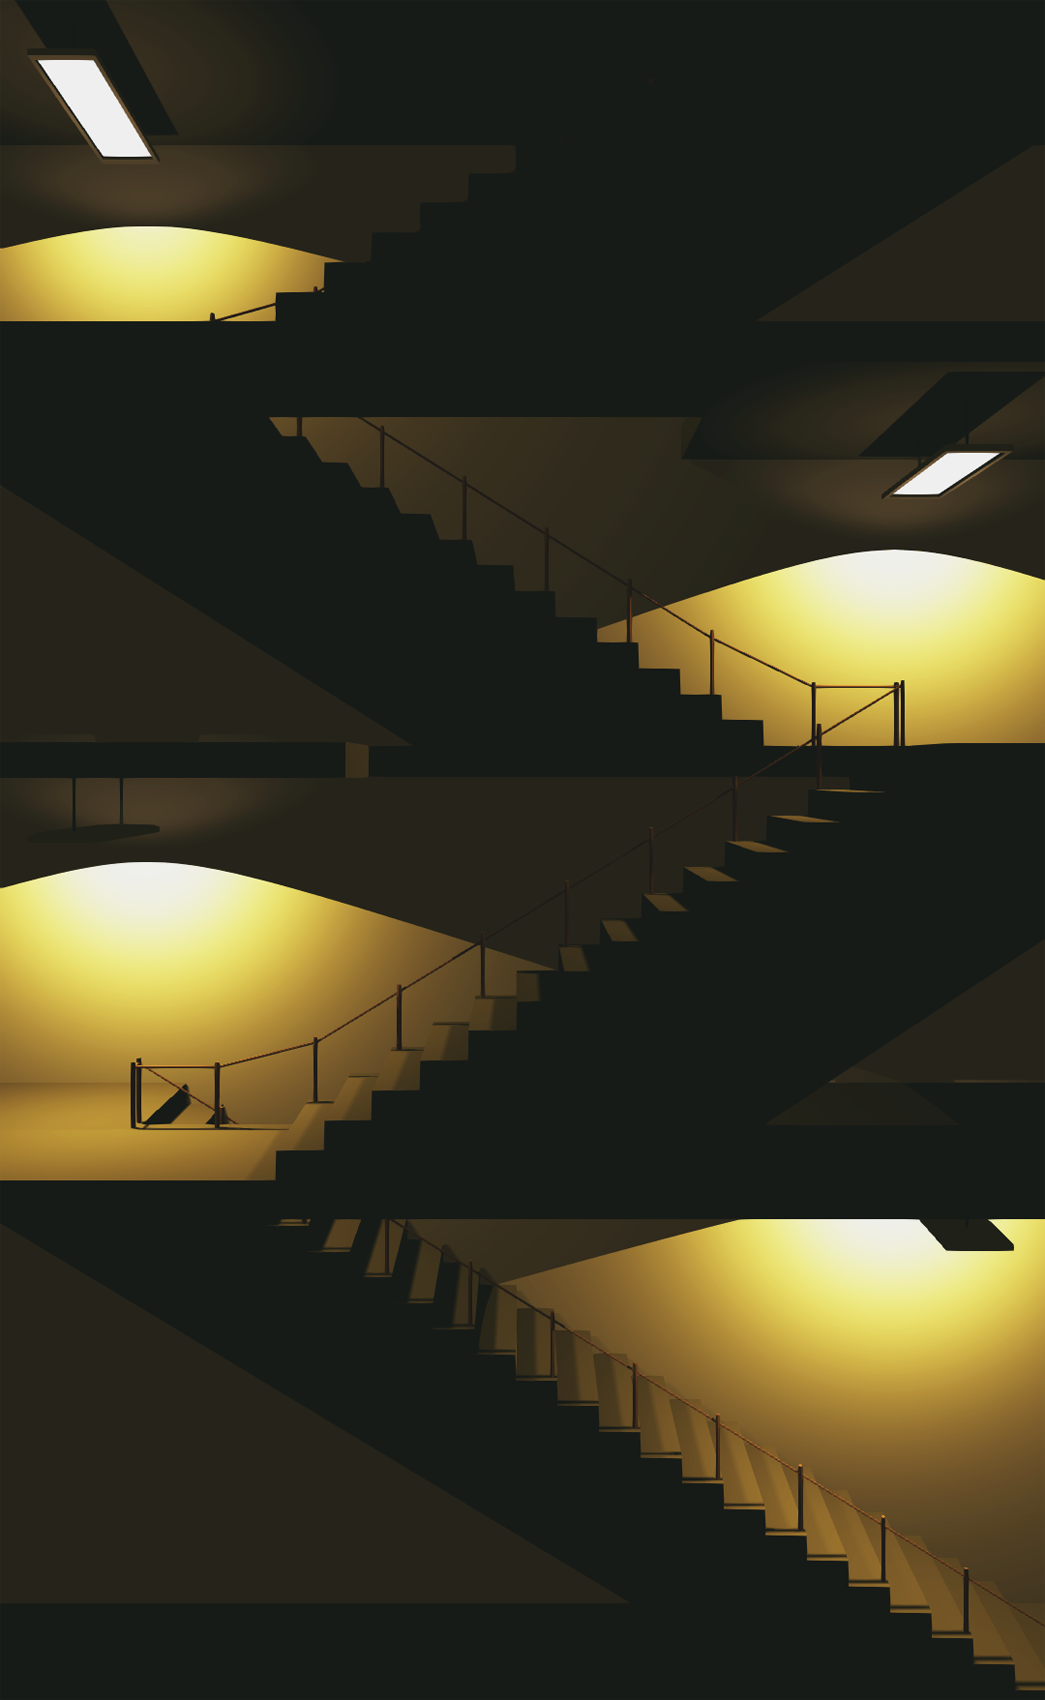 14_Stairs.png